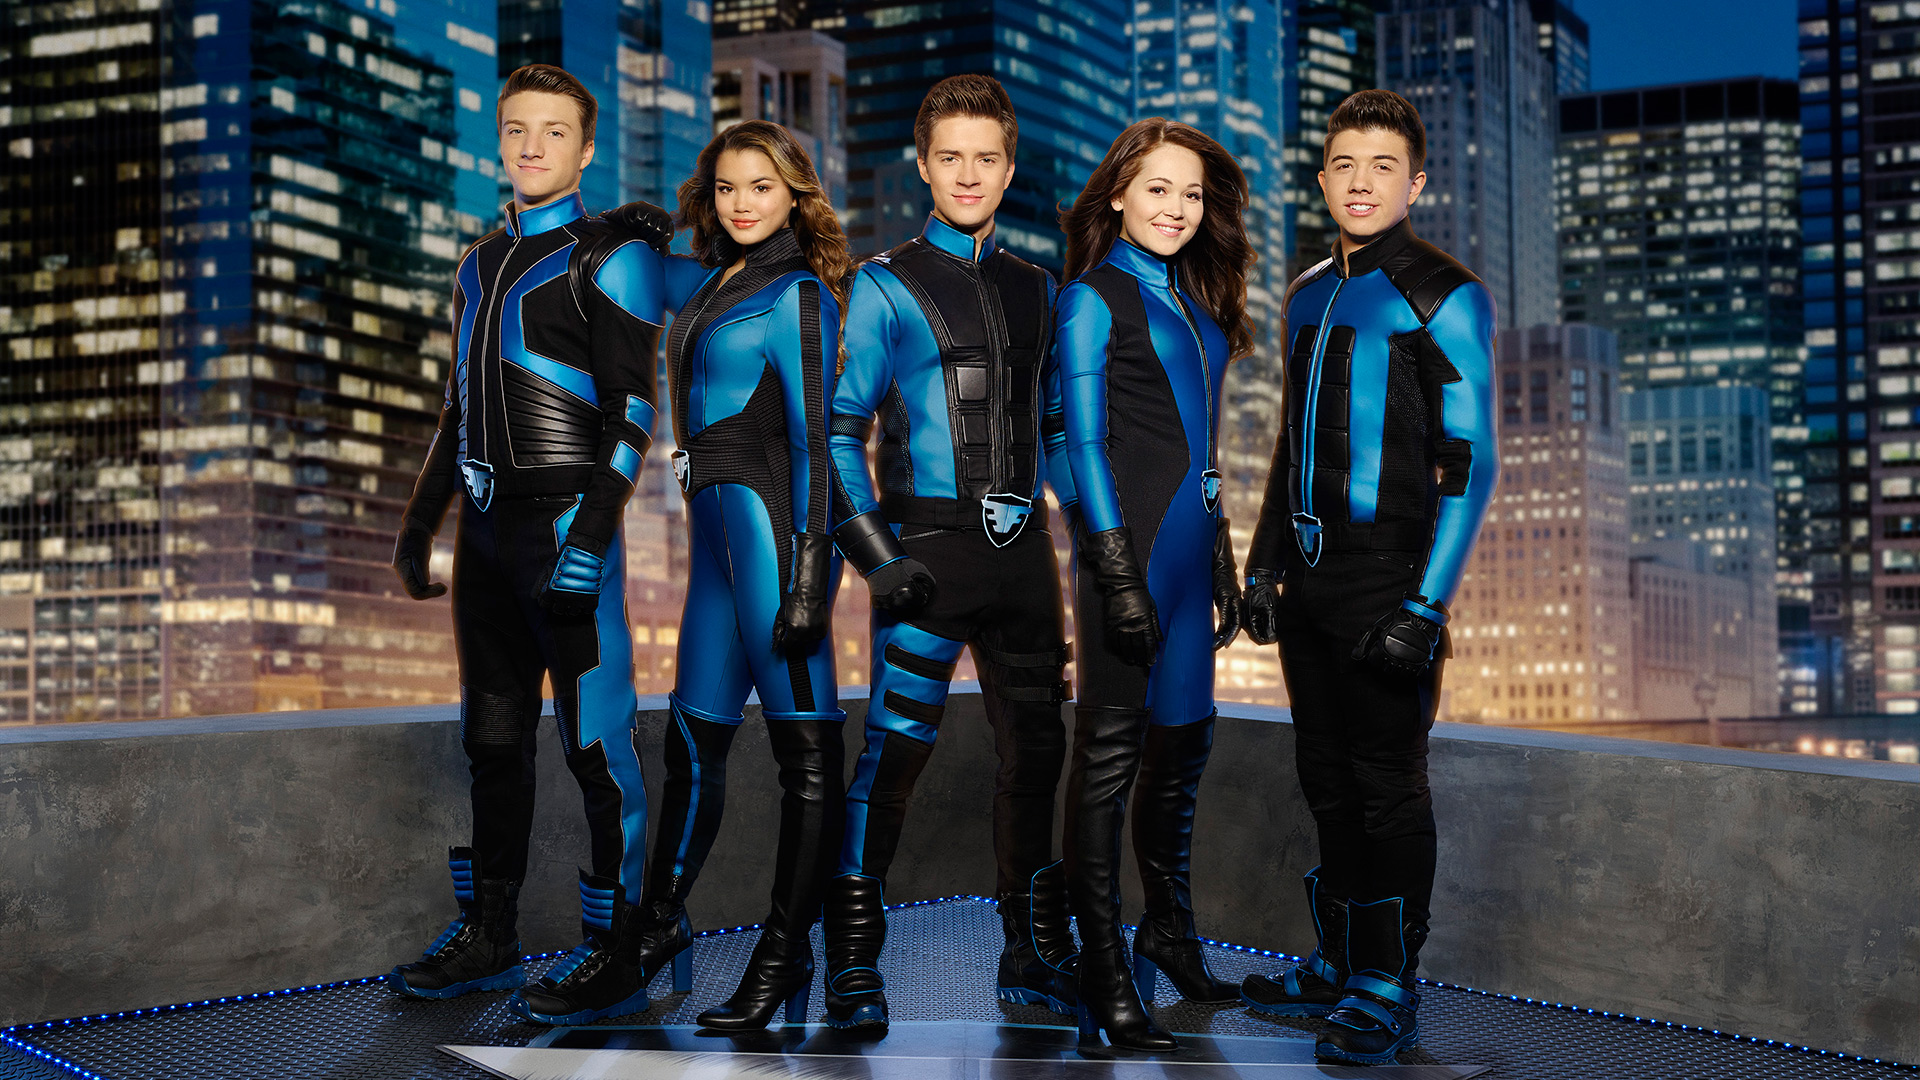 lab rats cast dating Lab rats cast at d23 expo 2016 season 3 cast jpg the cast of lab rats elite force memorate first day filming by sning fun pics twist lab rats lab rats cast kelli berglund bradley steven perry paris berelc celebrate lab &nbsp kelli berglund shares how she really feels about her former lab &nbsp lab.